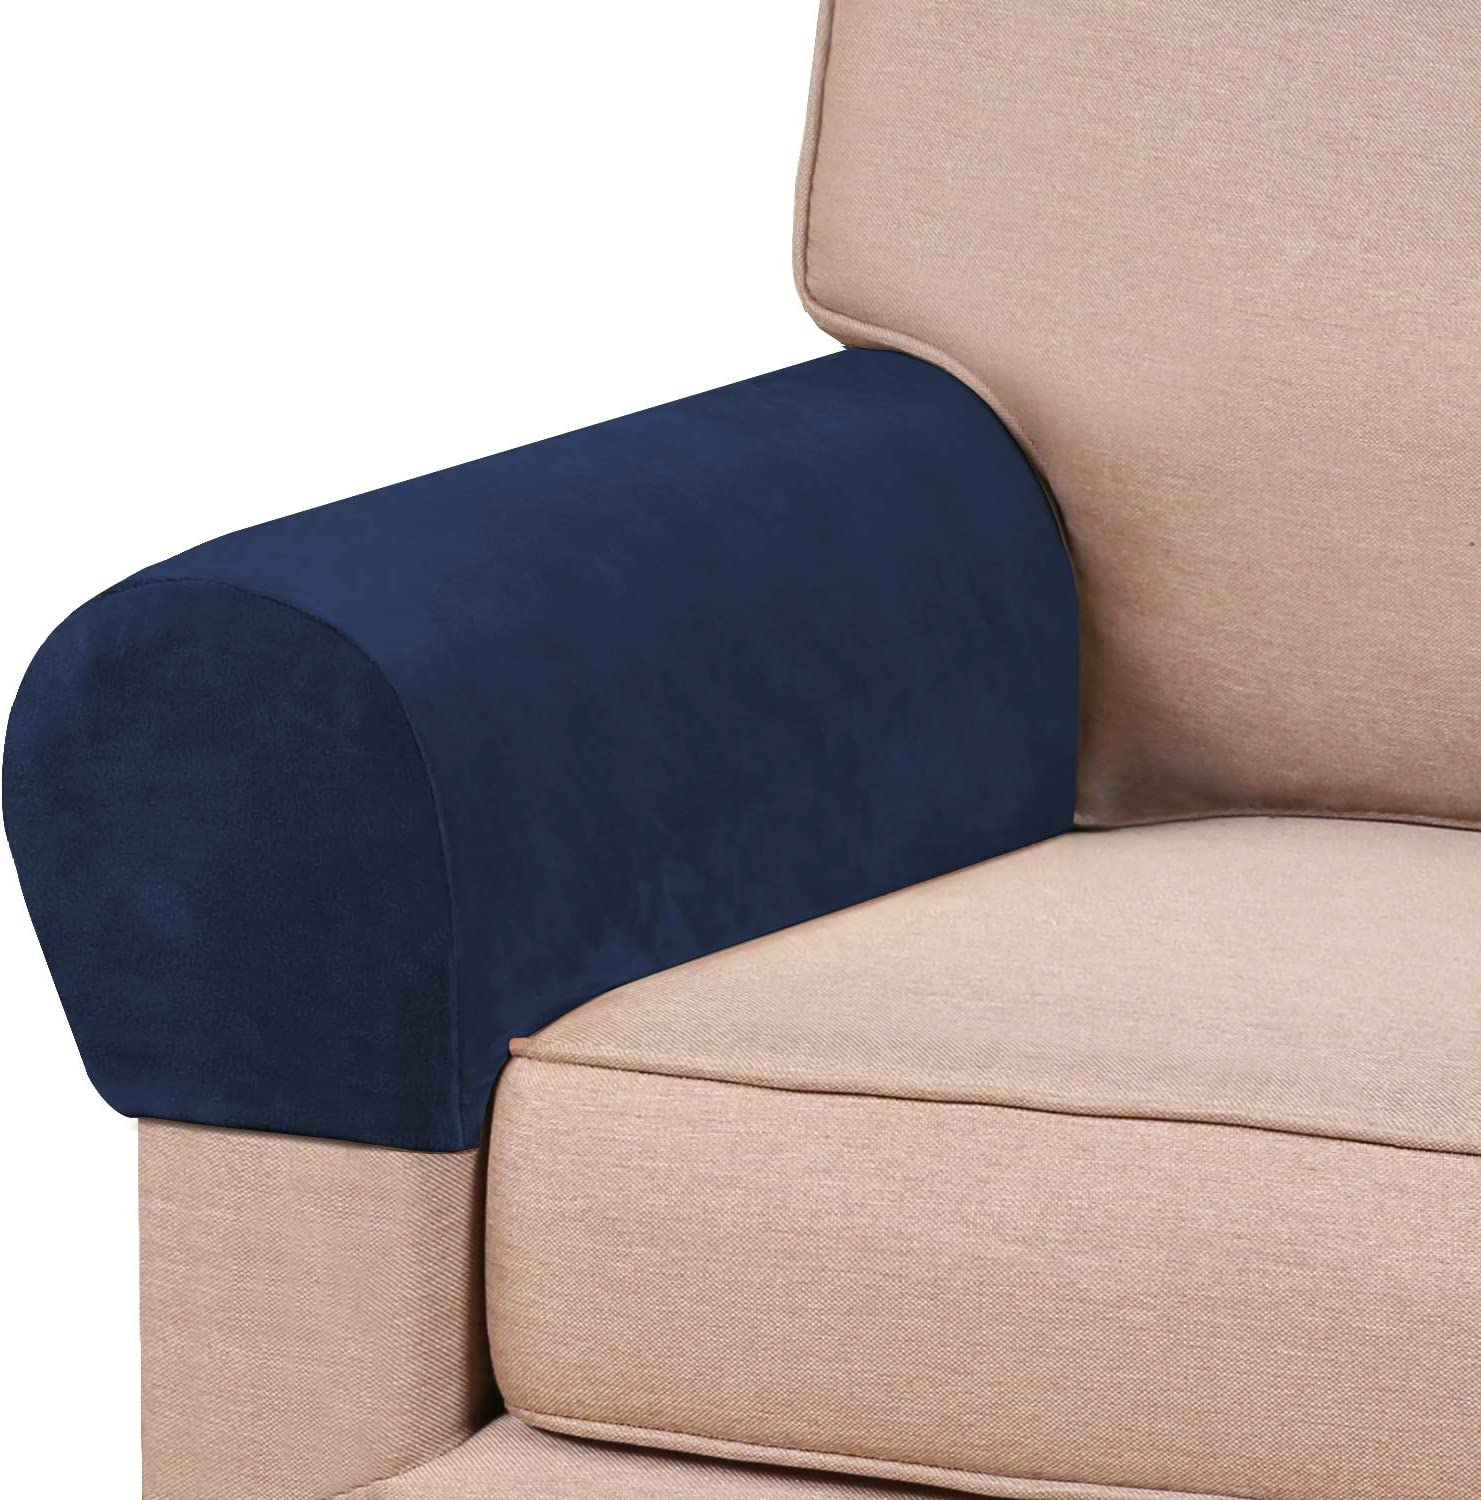 Thick Velvet Stretch Armrest Covers for Chairs and Sofas Armchair Covers for Arms Couch Arm Covers Armrest Covers for Sofa Non Slip (4 Pack: Navy)